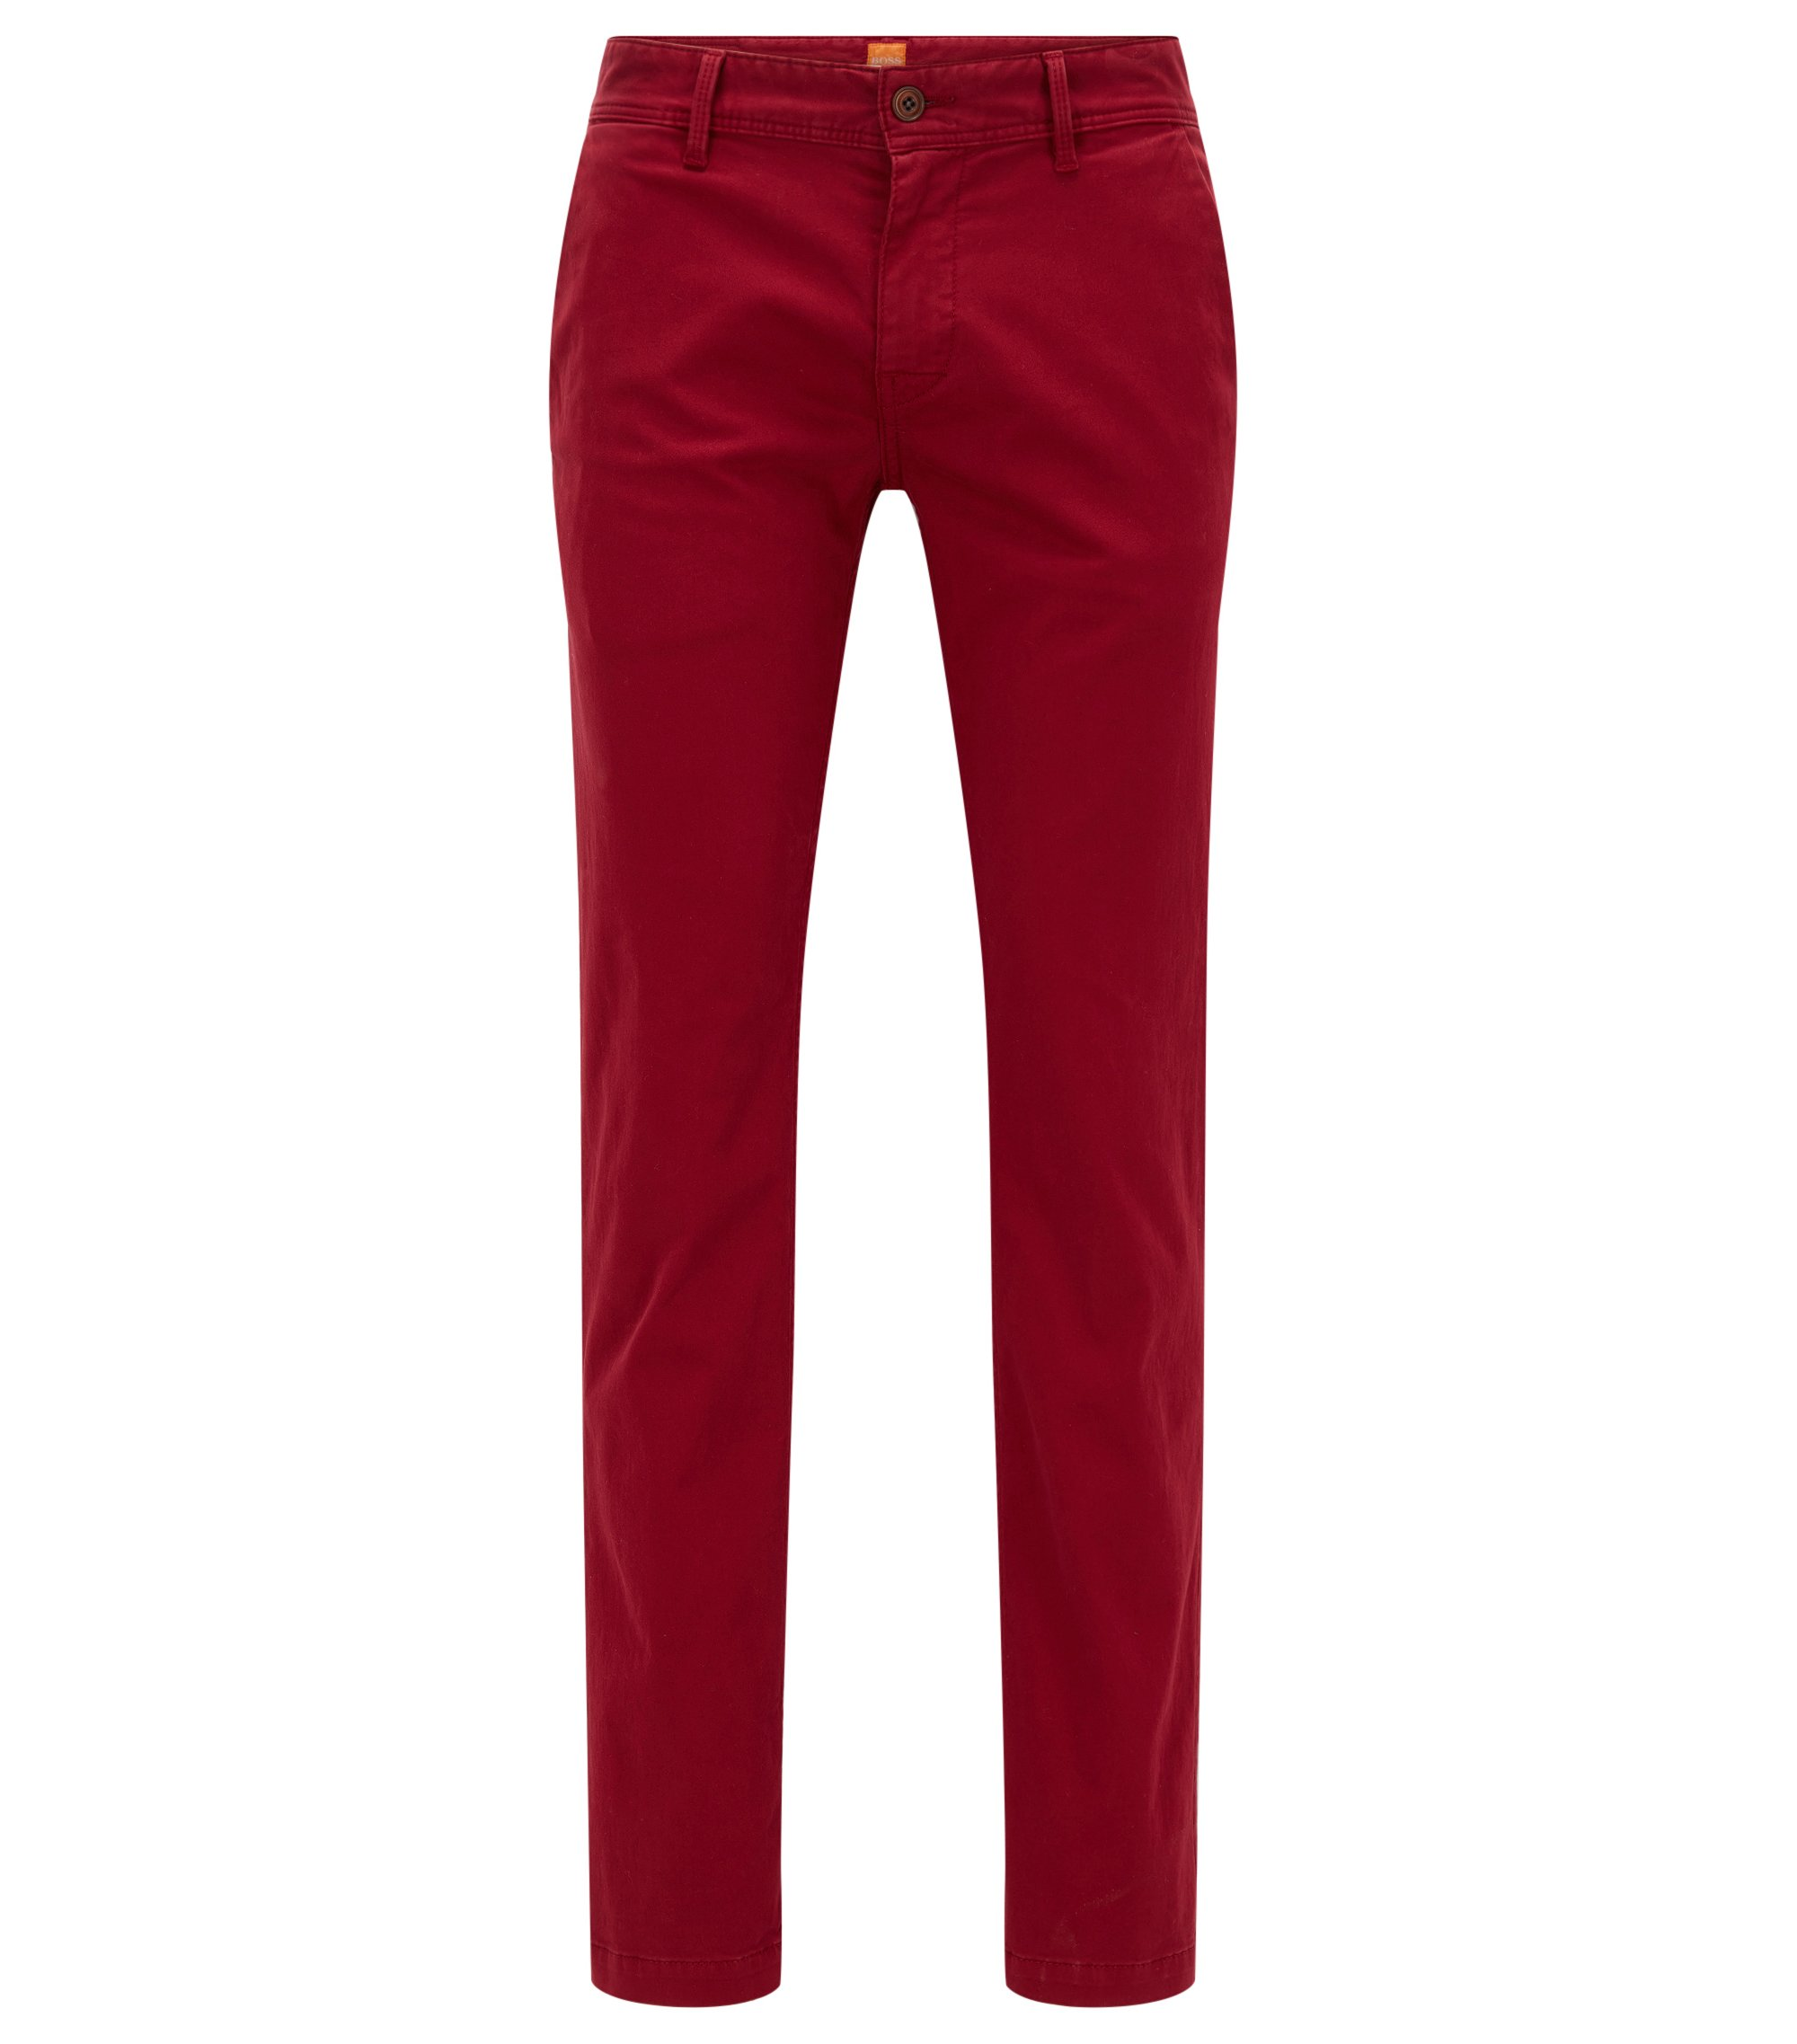 Stretch Cotton Chino Pants, Slim Fit | Schino Slim D, Red